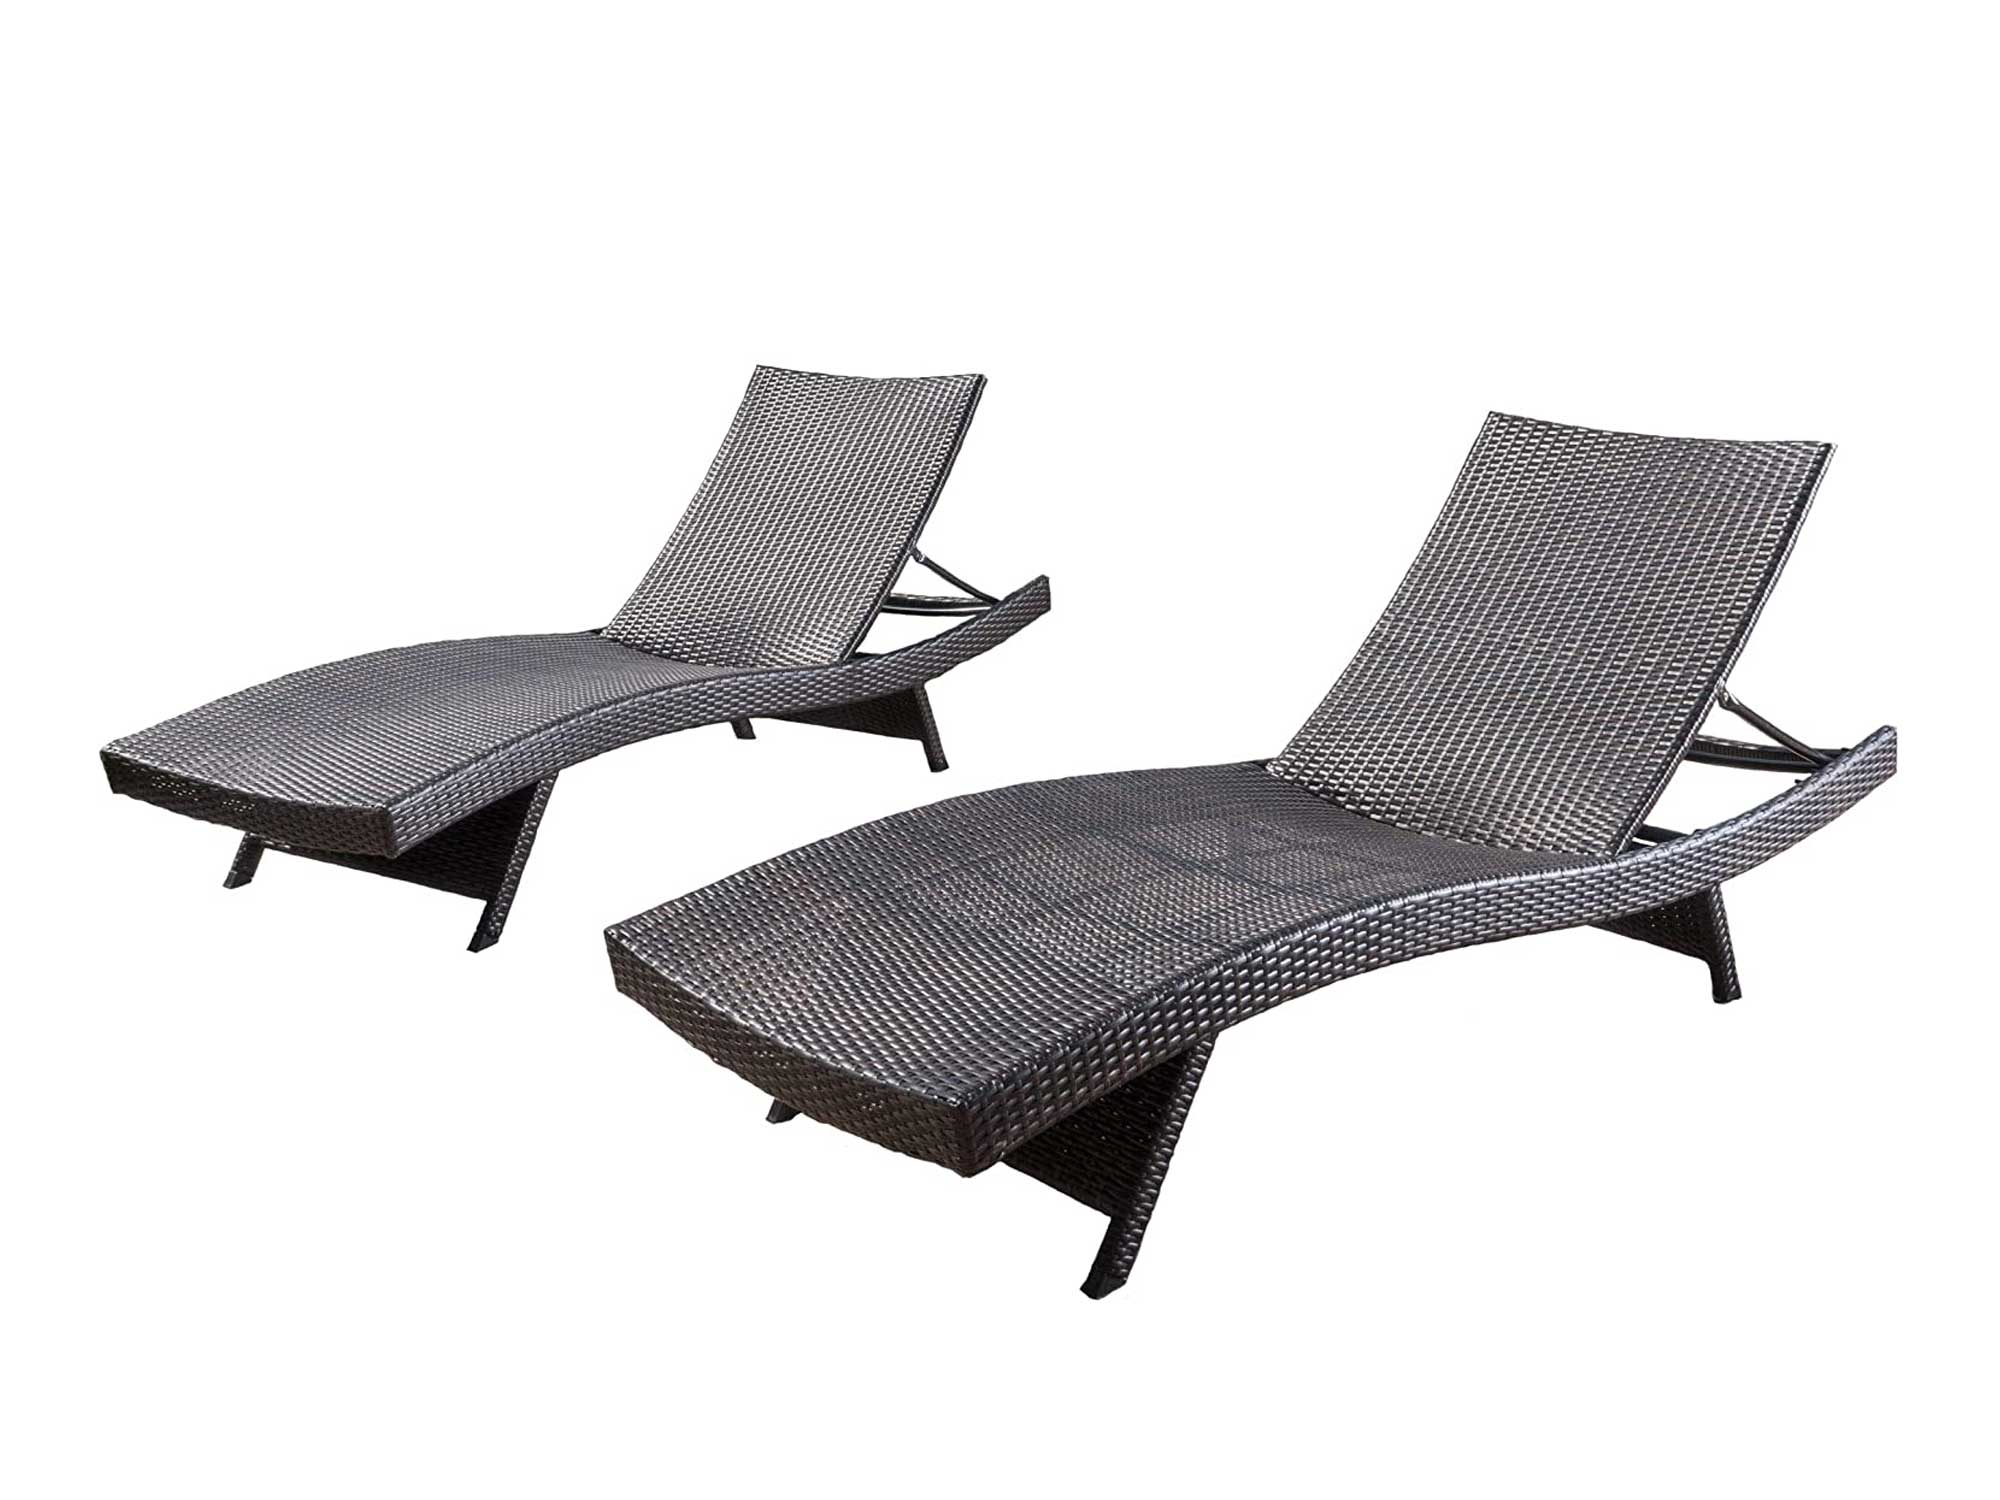 Christopher Knight Home Lakeport Outdoor Adjustable Chaise Lounge Chair